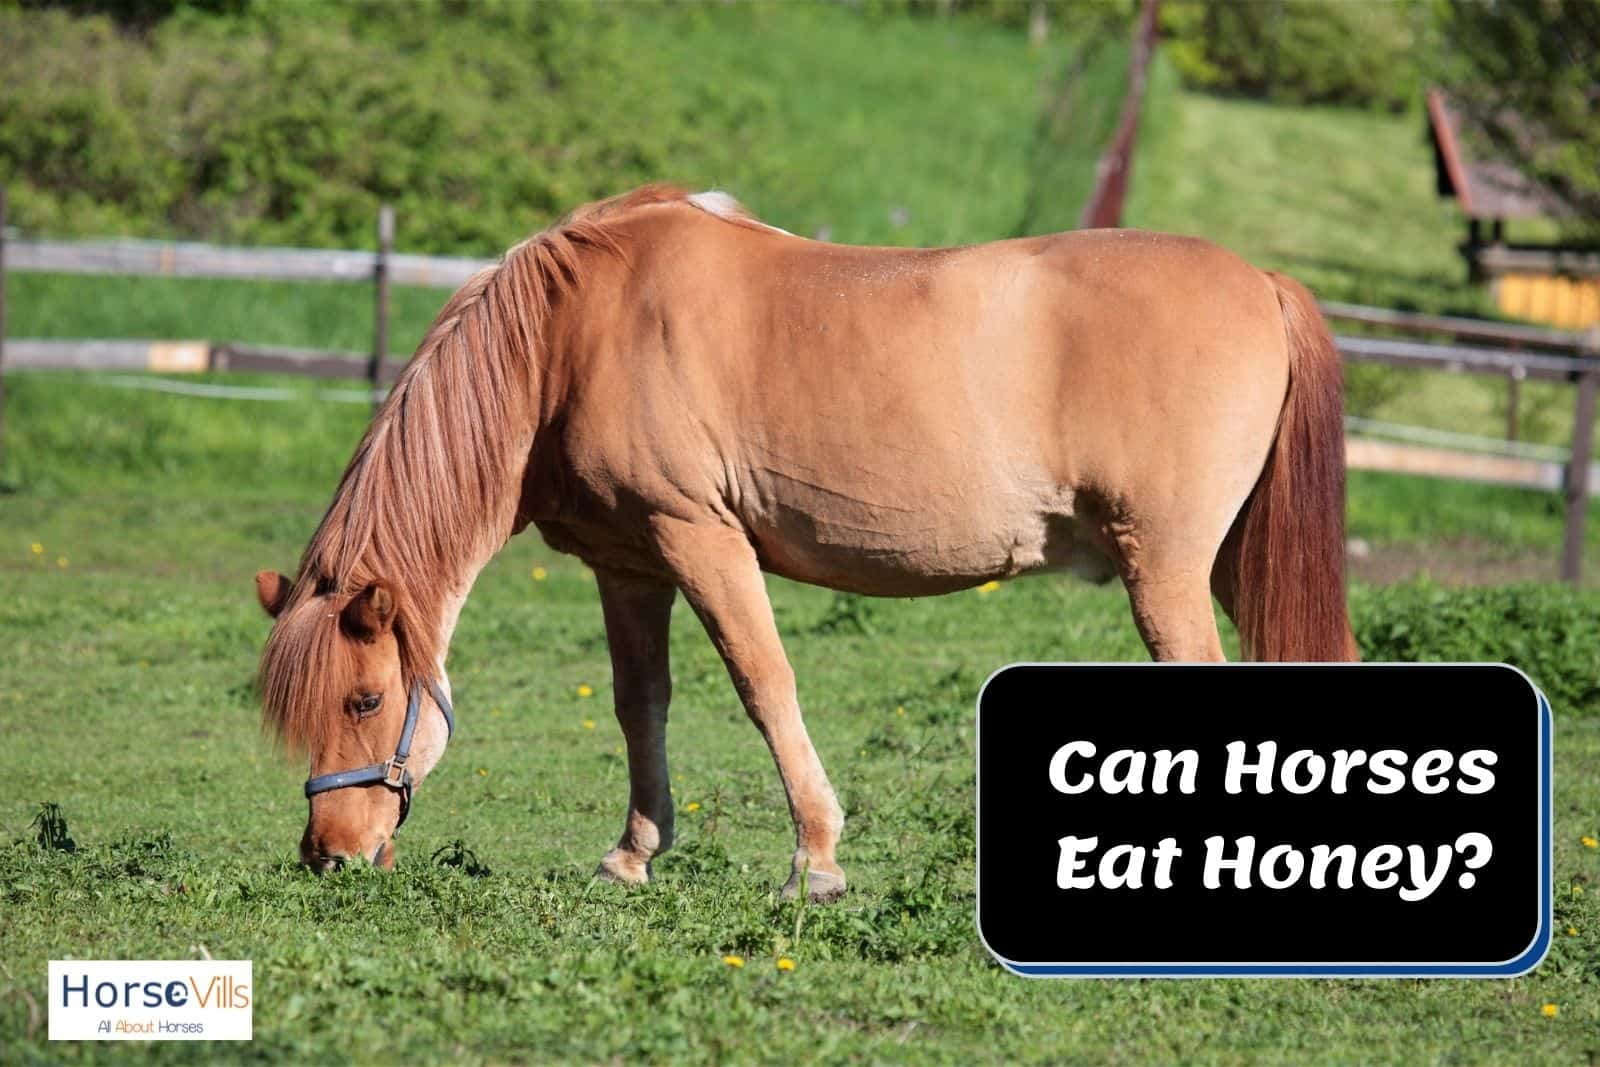 brown horse eating grasses. can horses eat honey too?